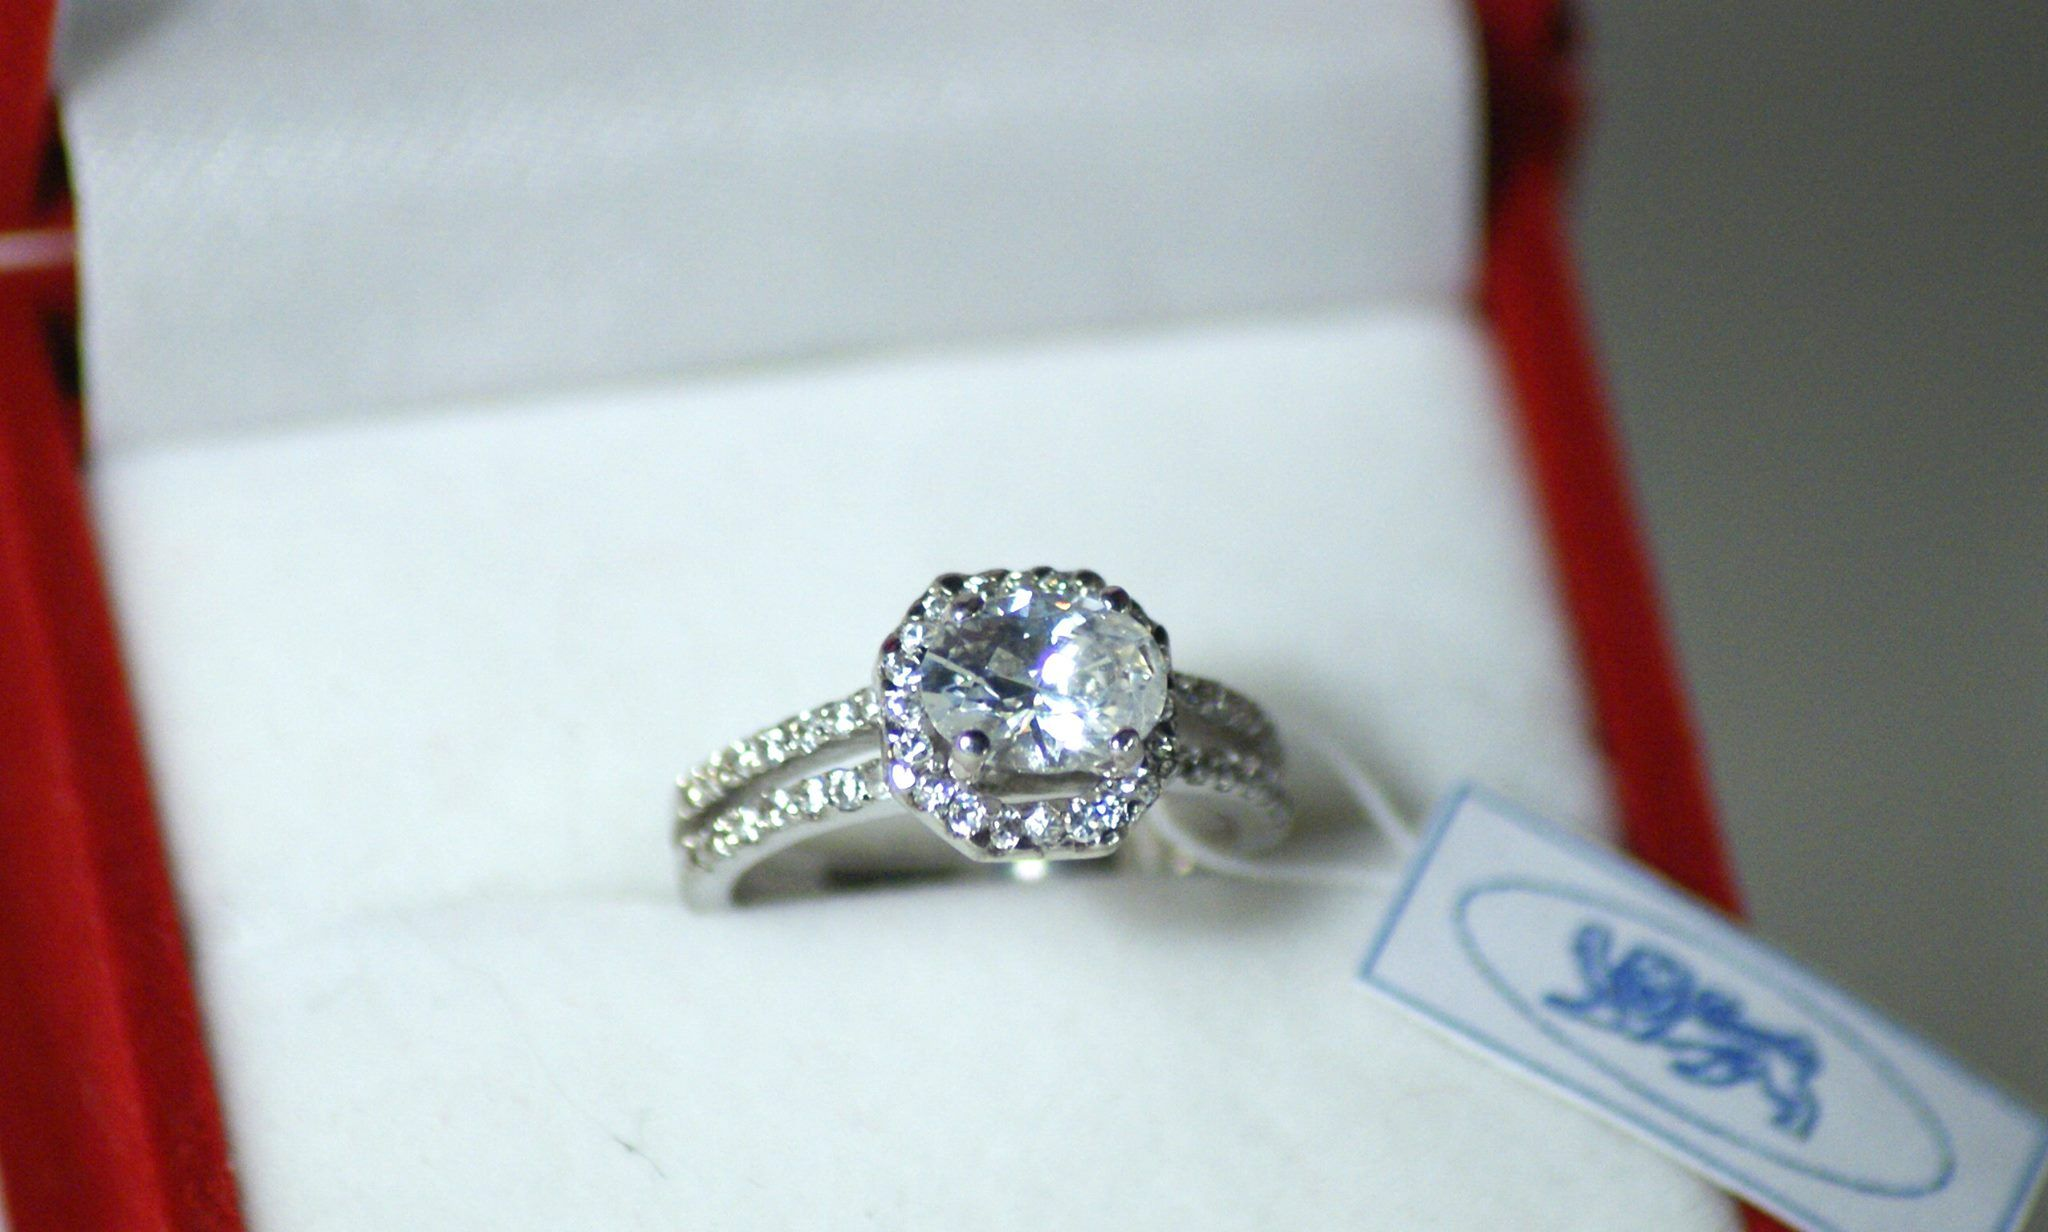 #Silver 925°, #Cz , #silverrings #bling #golddigger.ee #jewerly